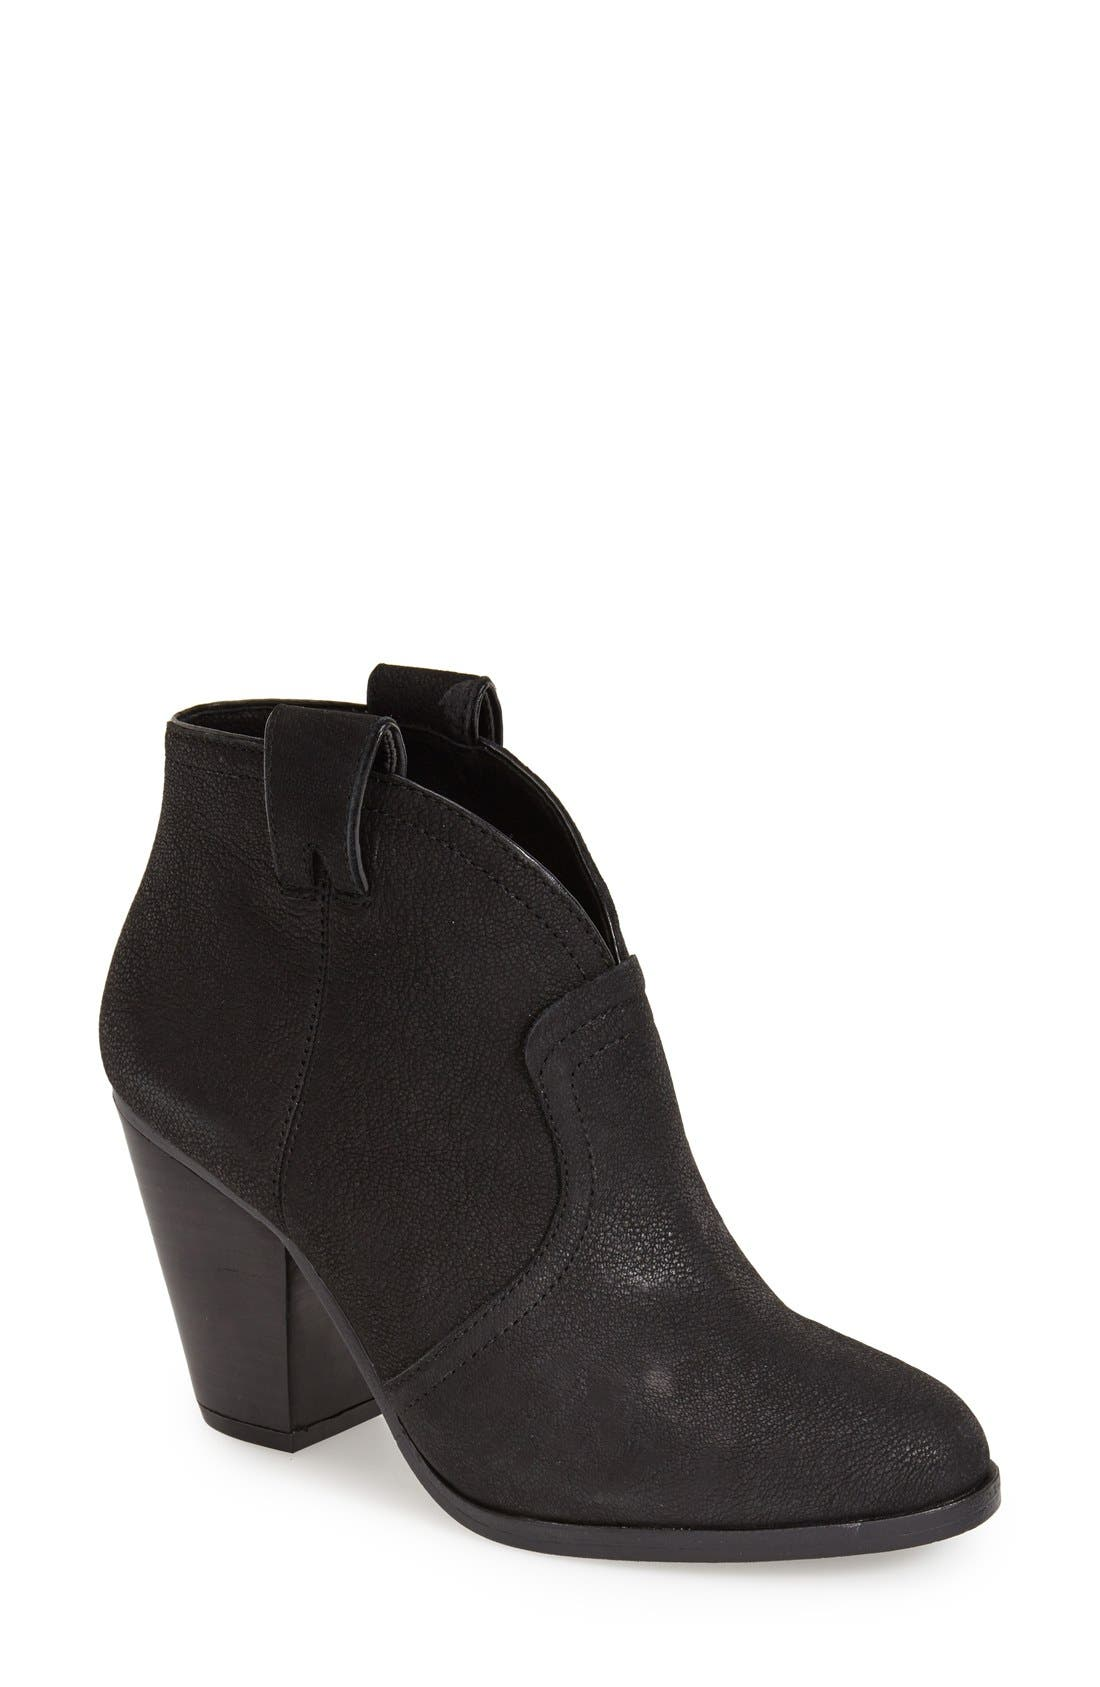 'Hillsy' Almond Toe Ankle Bootie, Main, color, 001